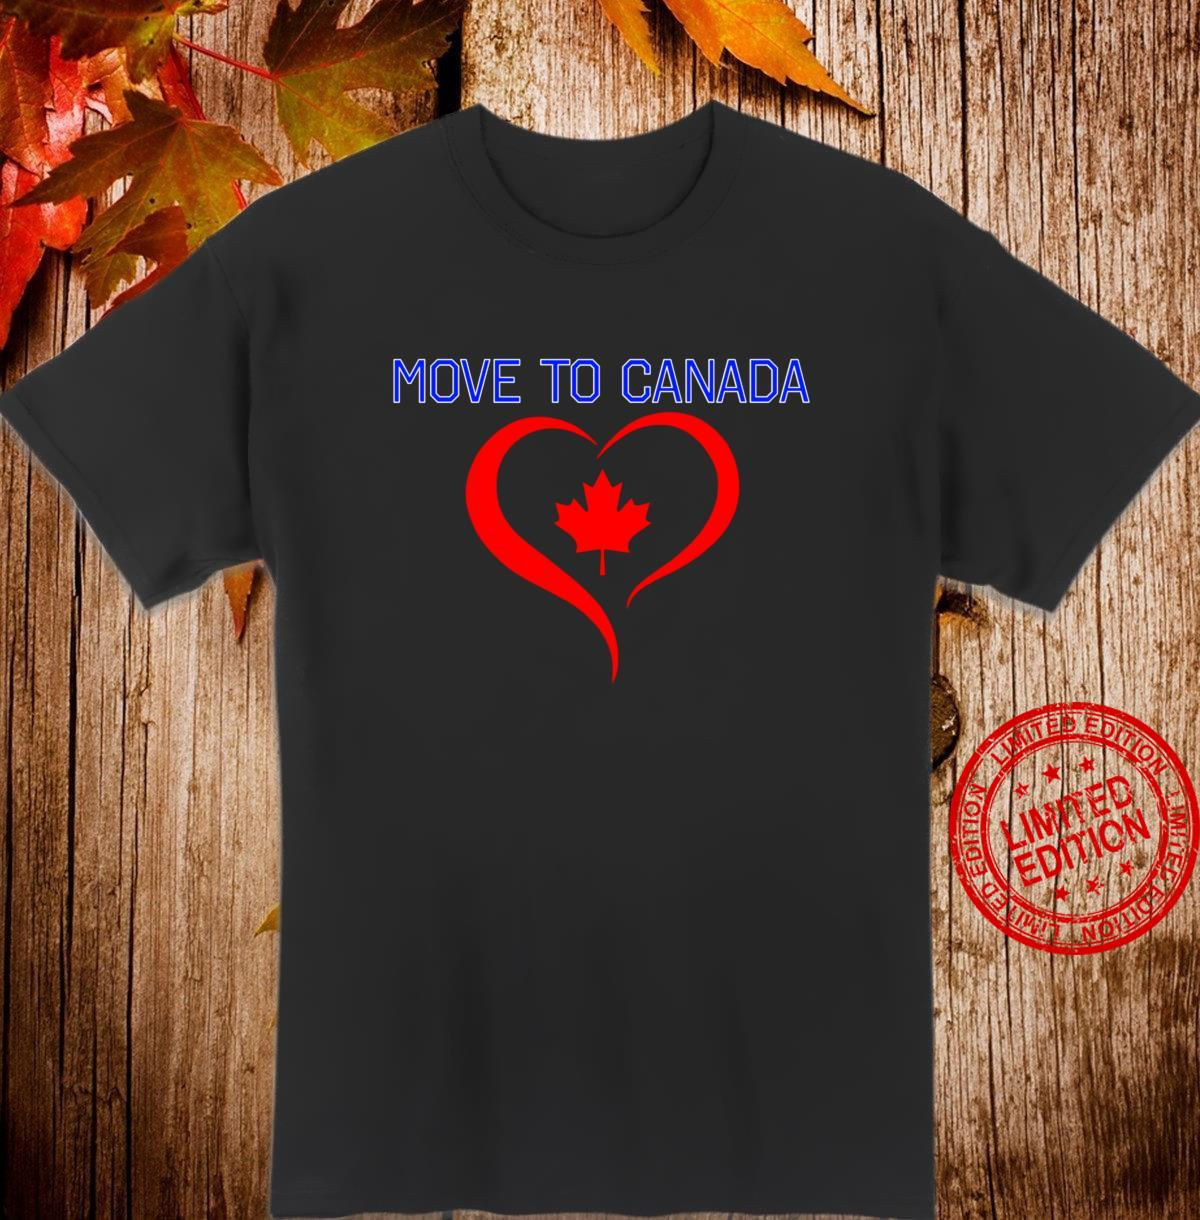 Move to Canada Red Maple Leaf in Stylized Heart Shirt